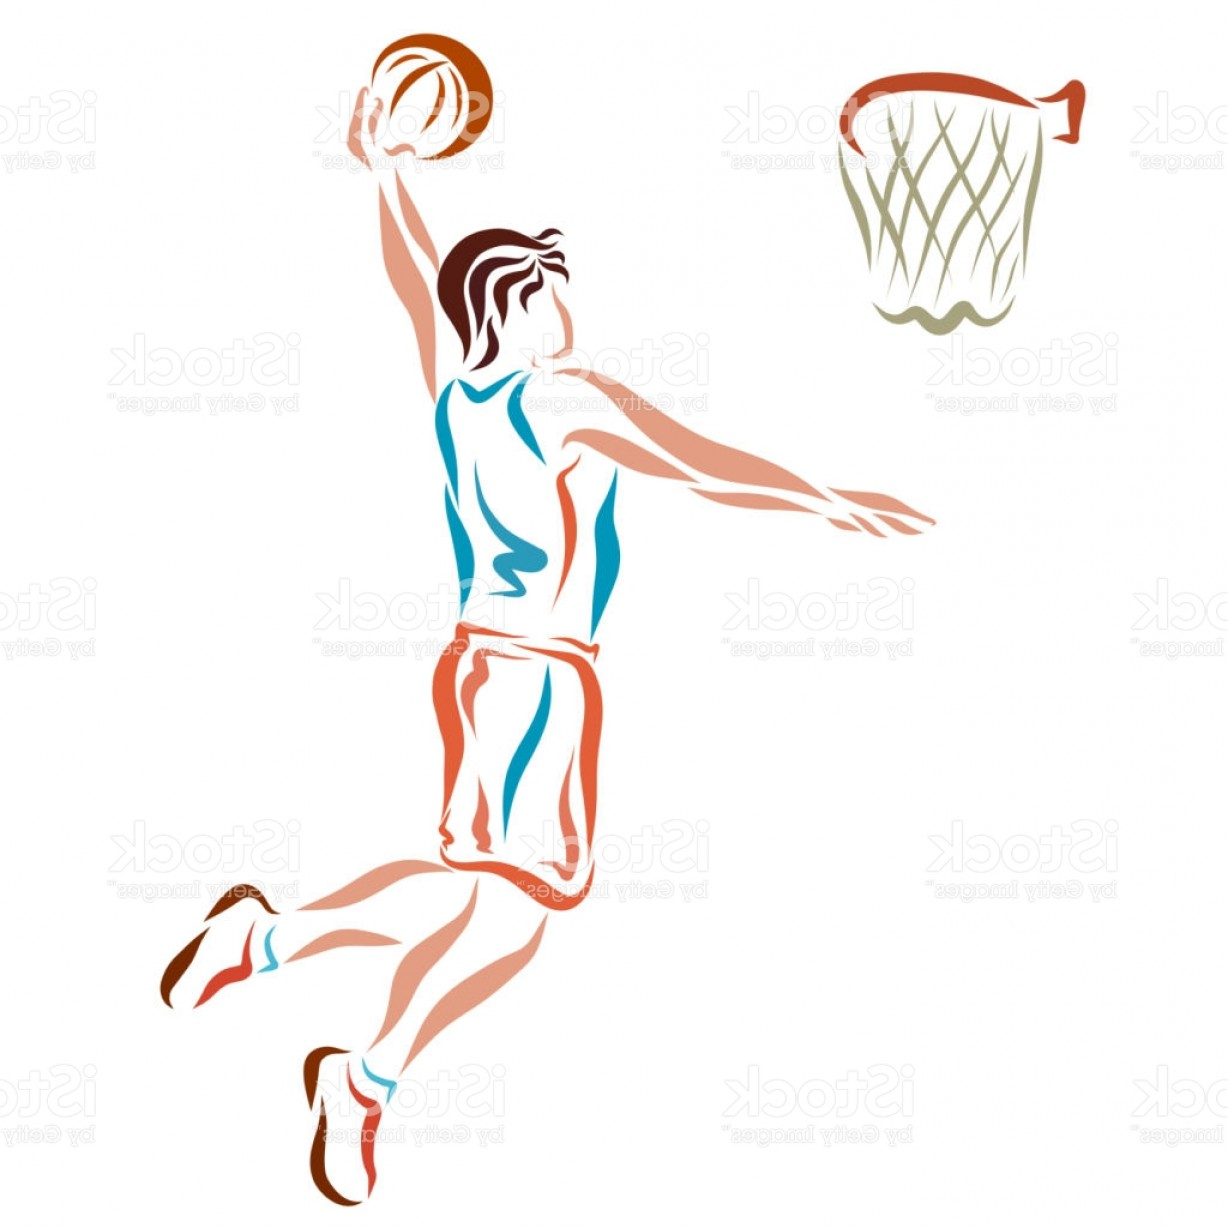 Volleyball Player Vector: Volleyball Player Throws The Ball Into The Basket Gm